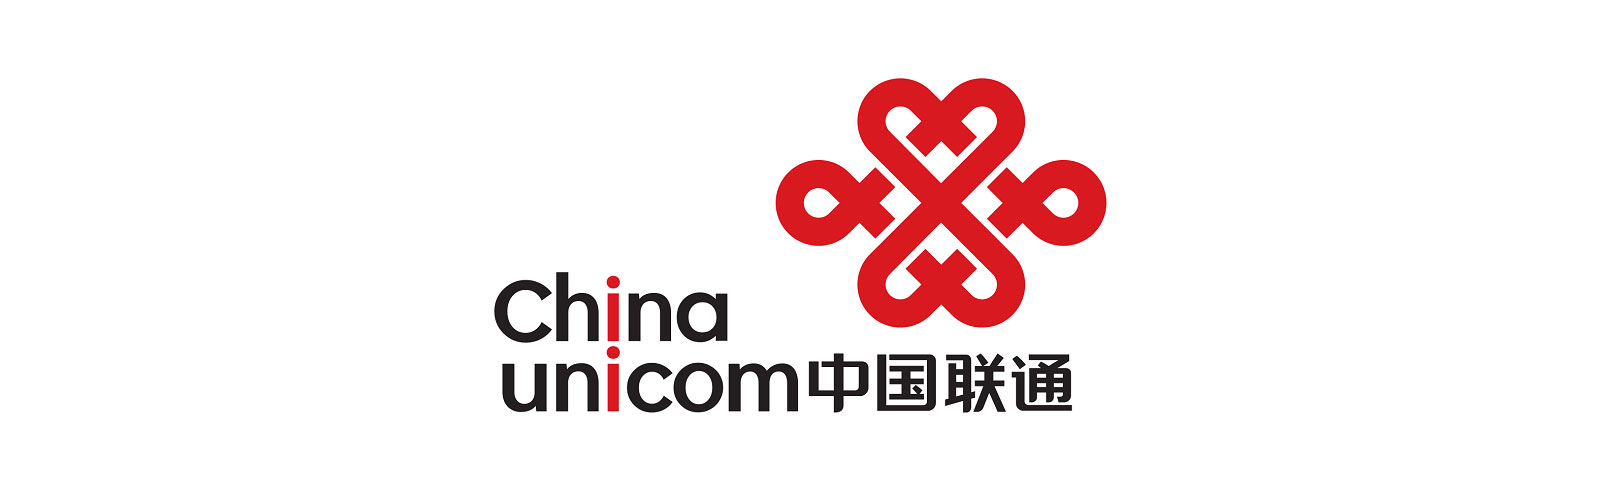 China Unicom announces the first batch of 5G devices supported by its 5G network